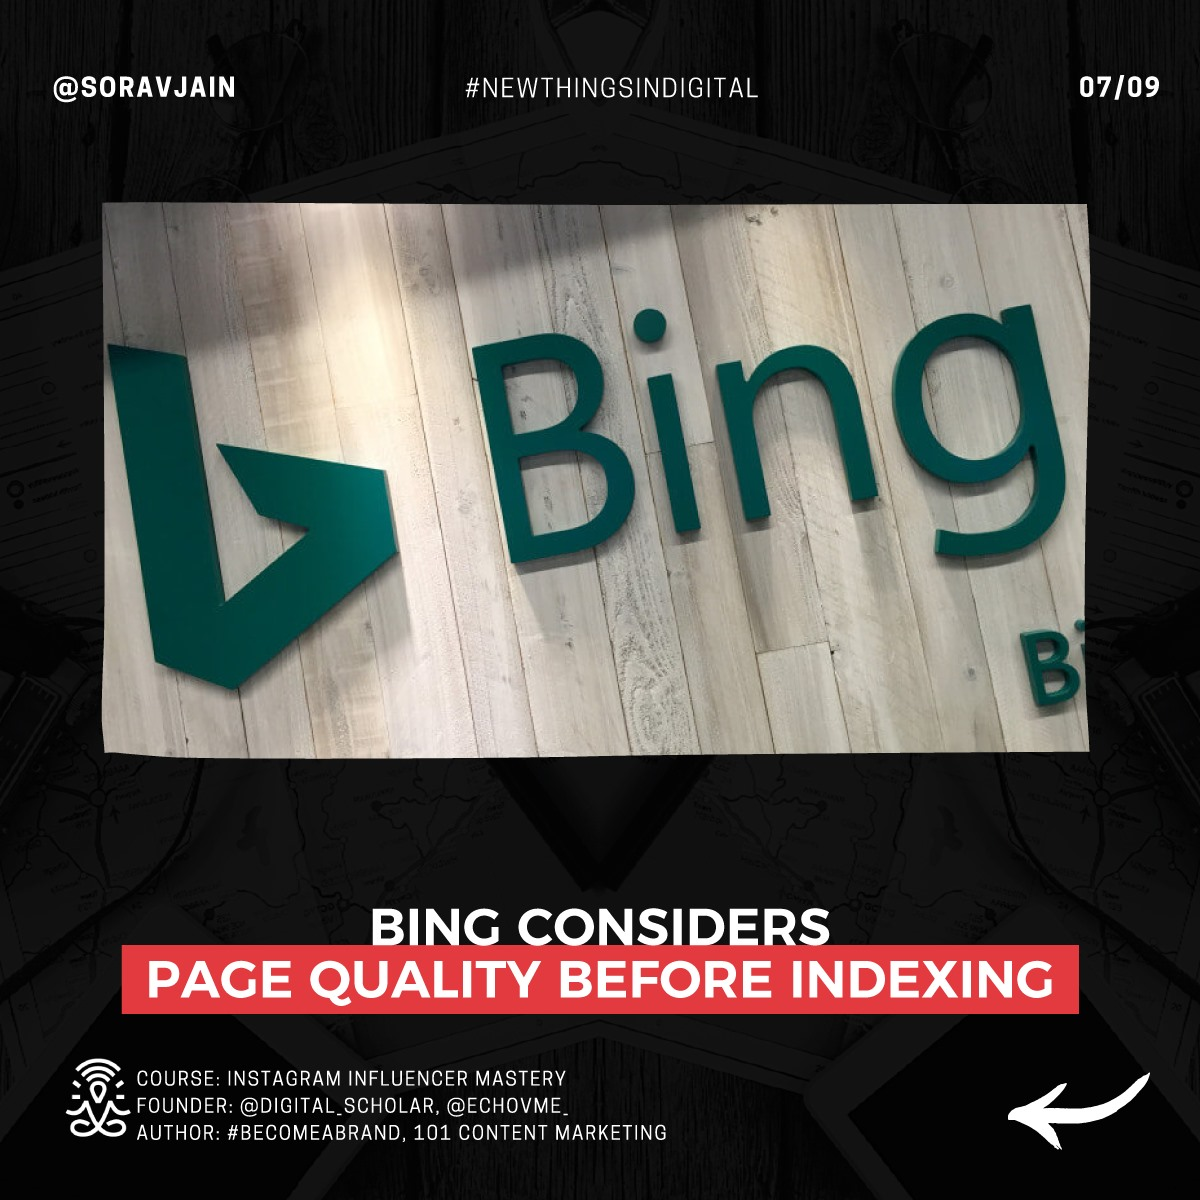 Bing considers page quality before indexing